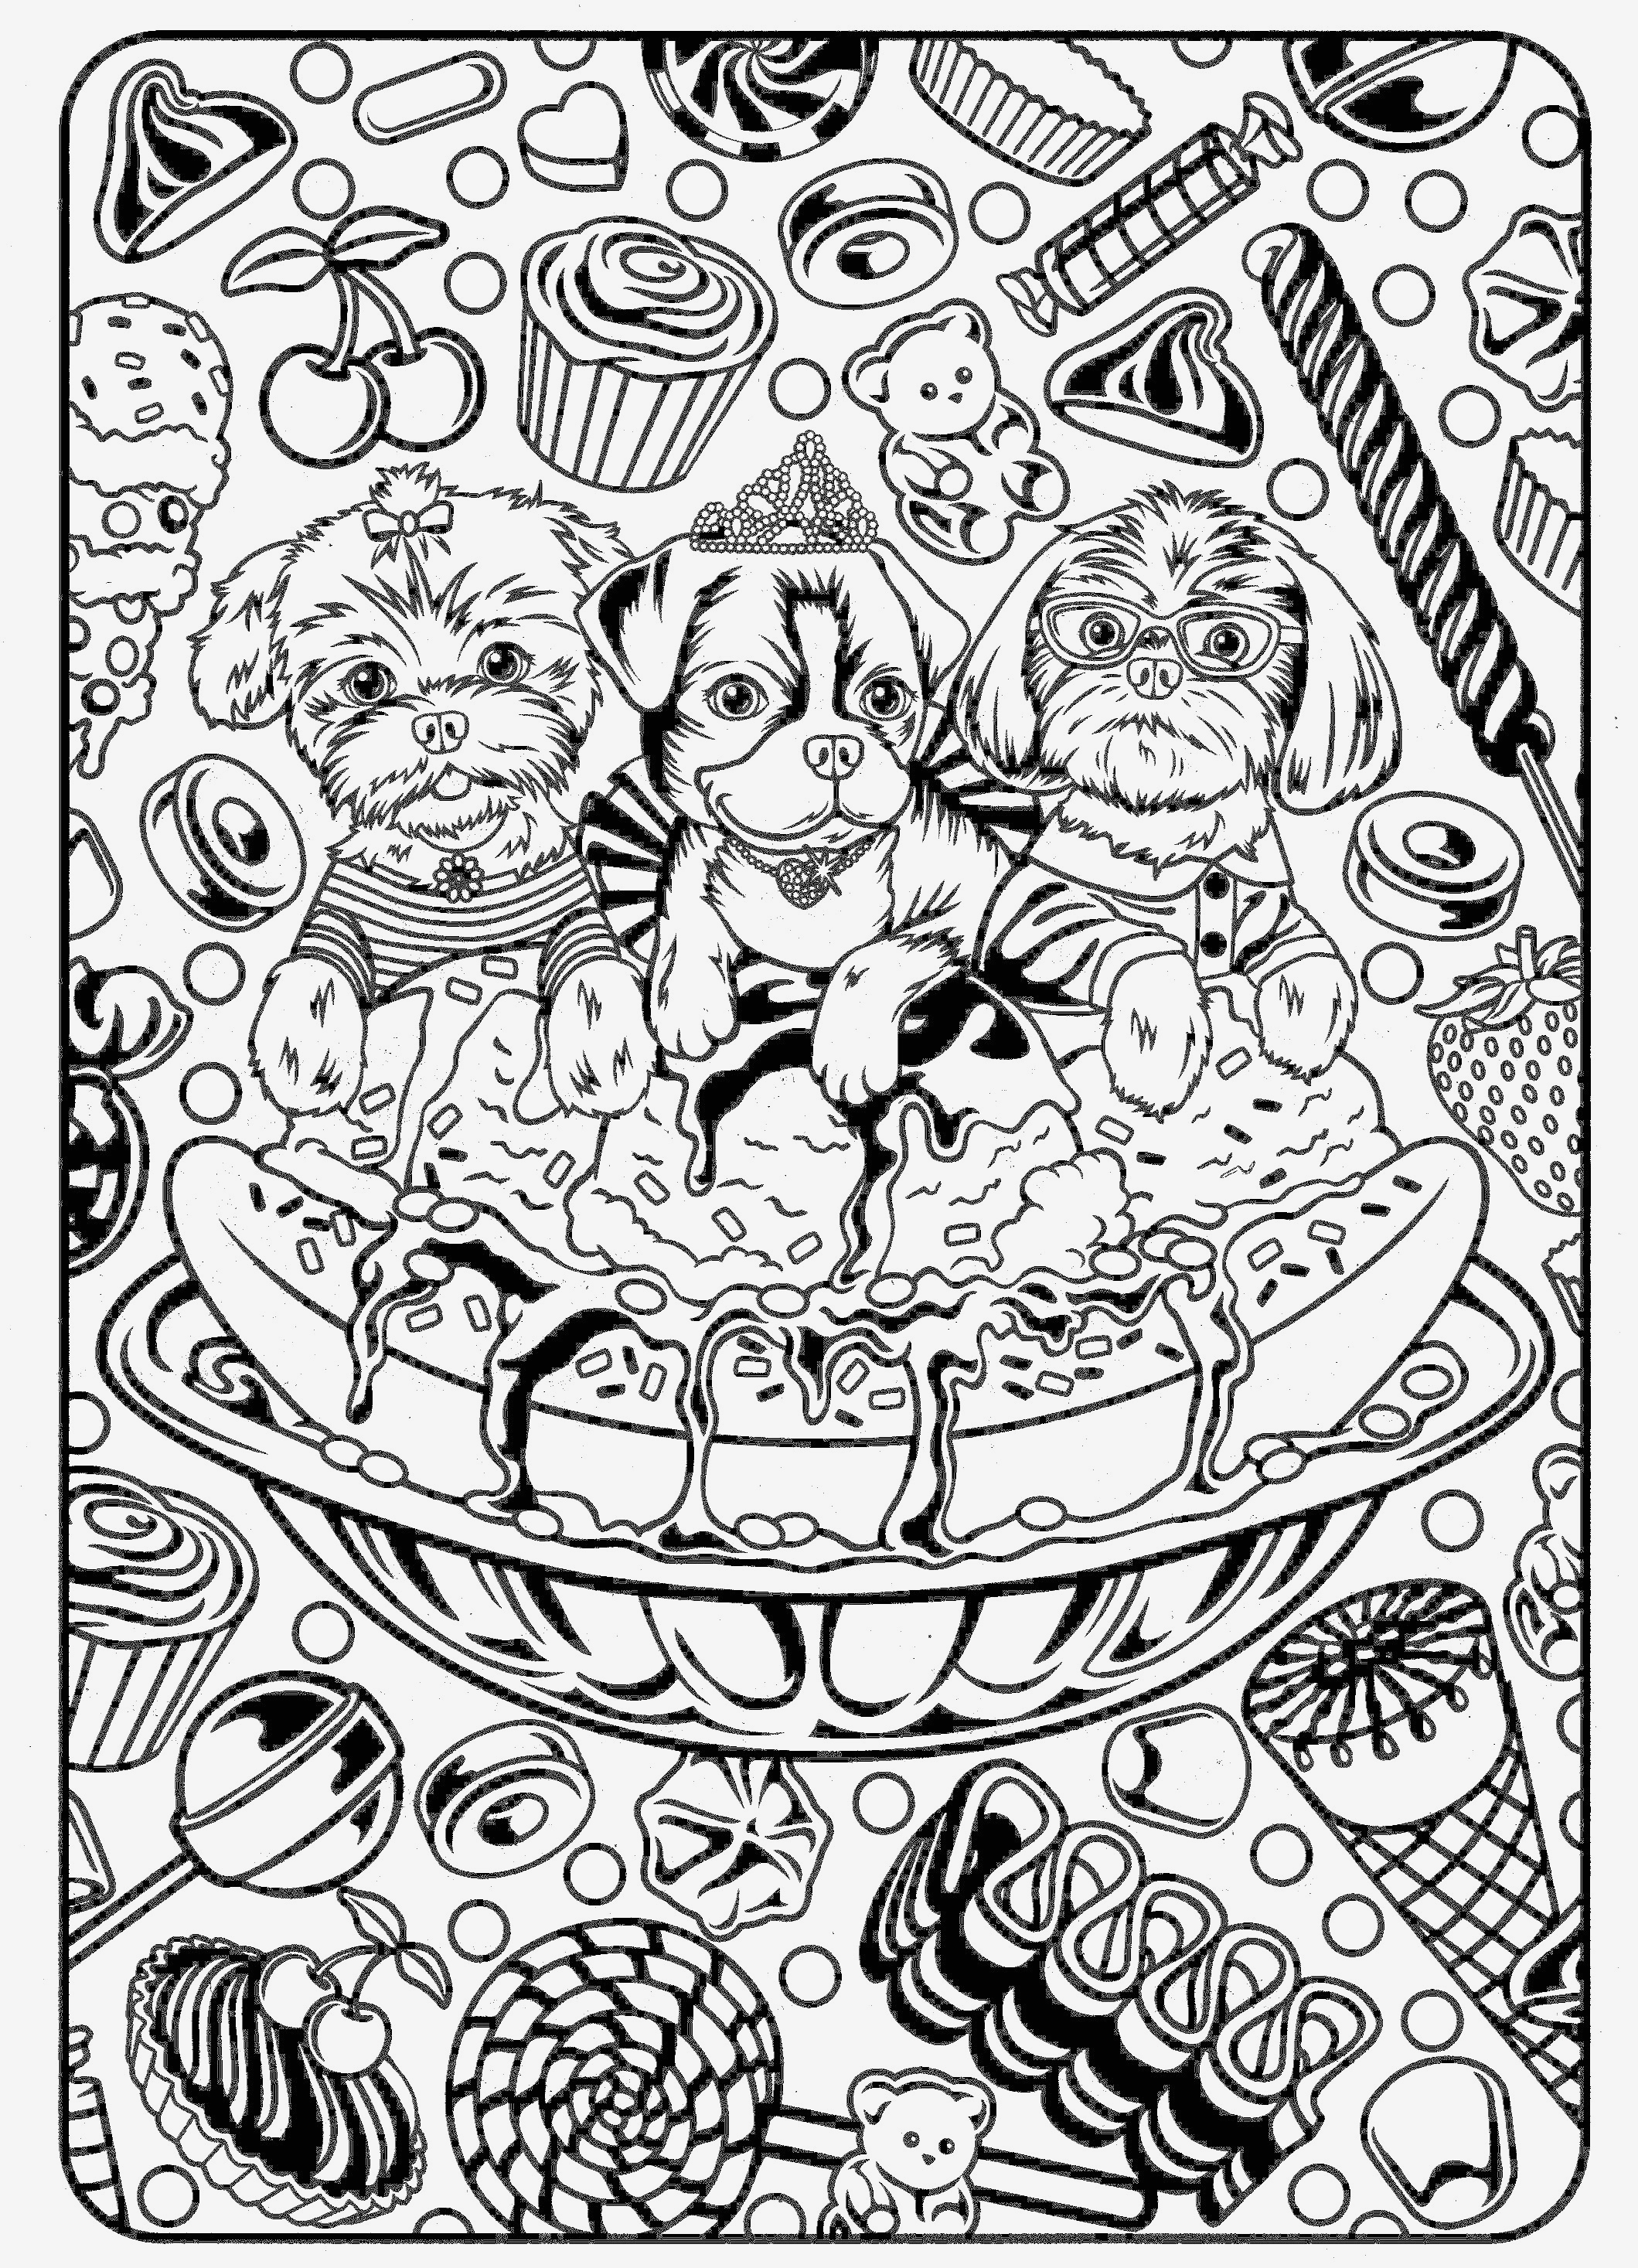 Labor Day Coloring Pages Free Printable - Printable Coloring Pages Teenage Mutant Ninja Turtles Coloring Pages